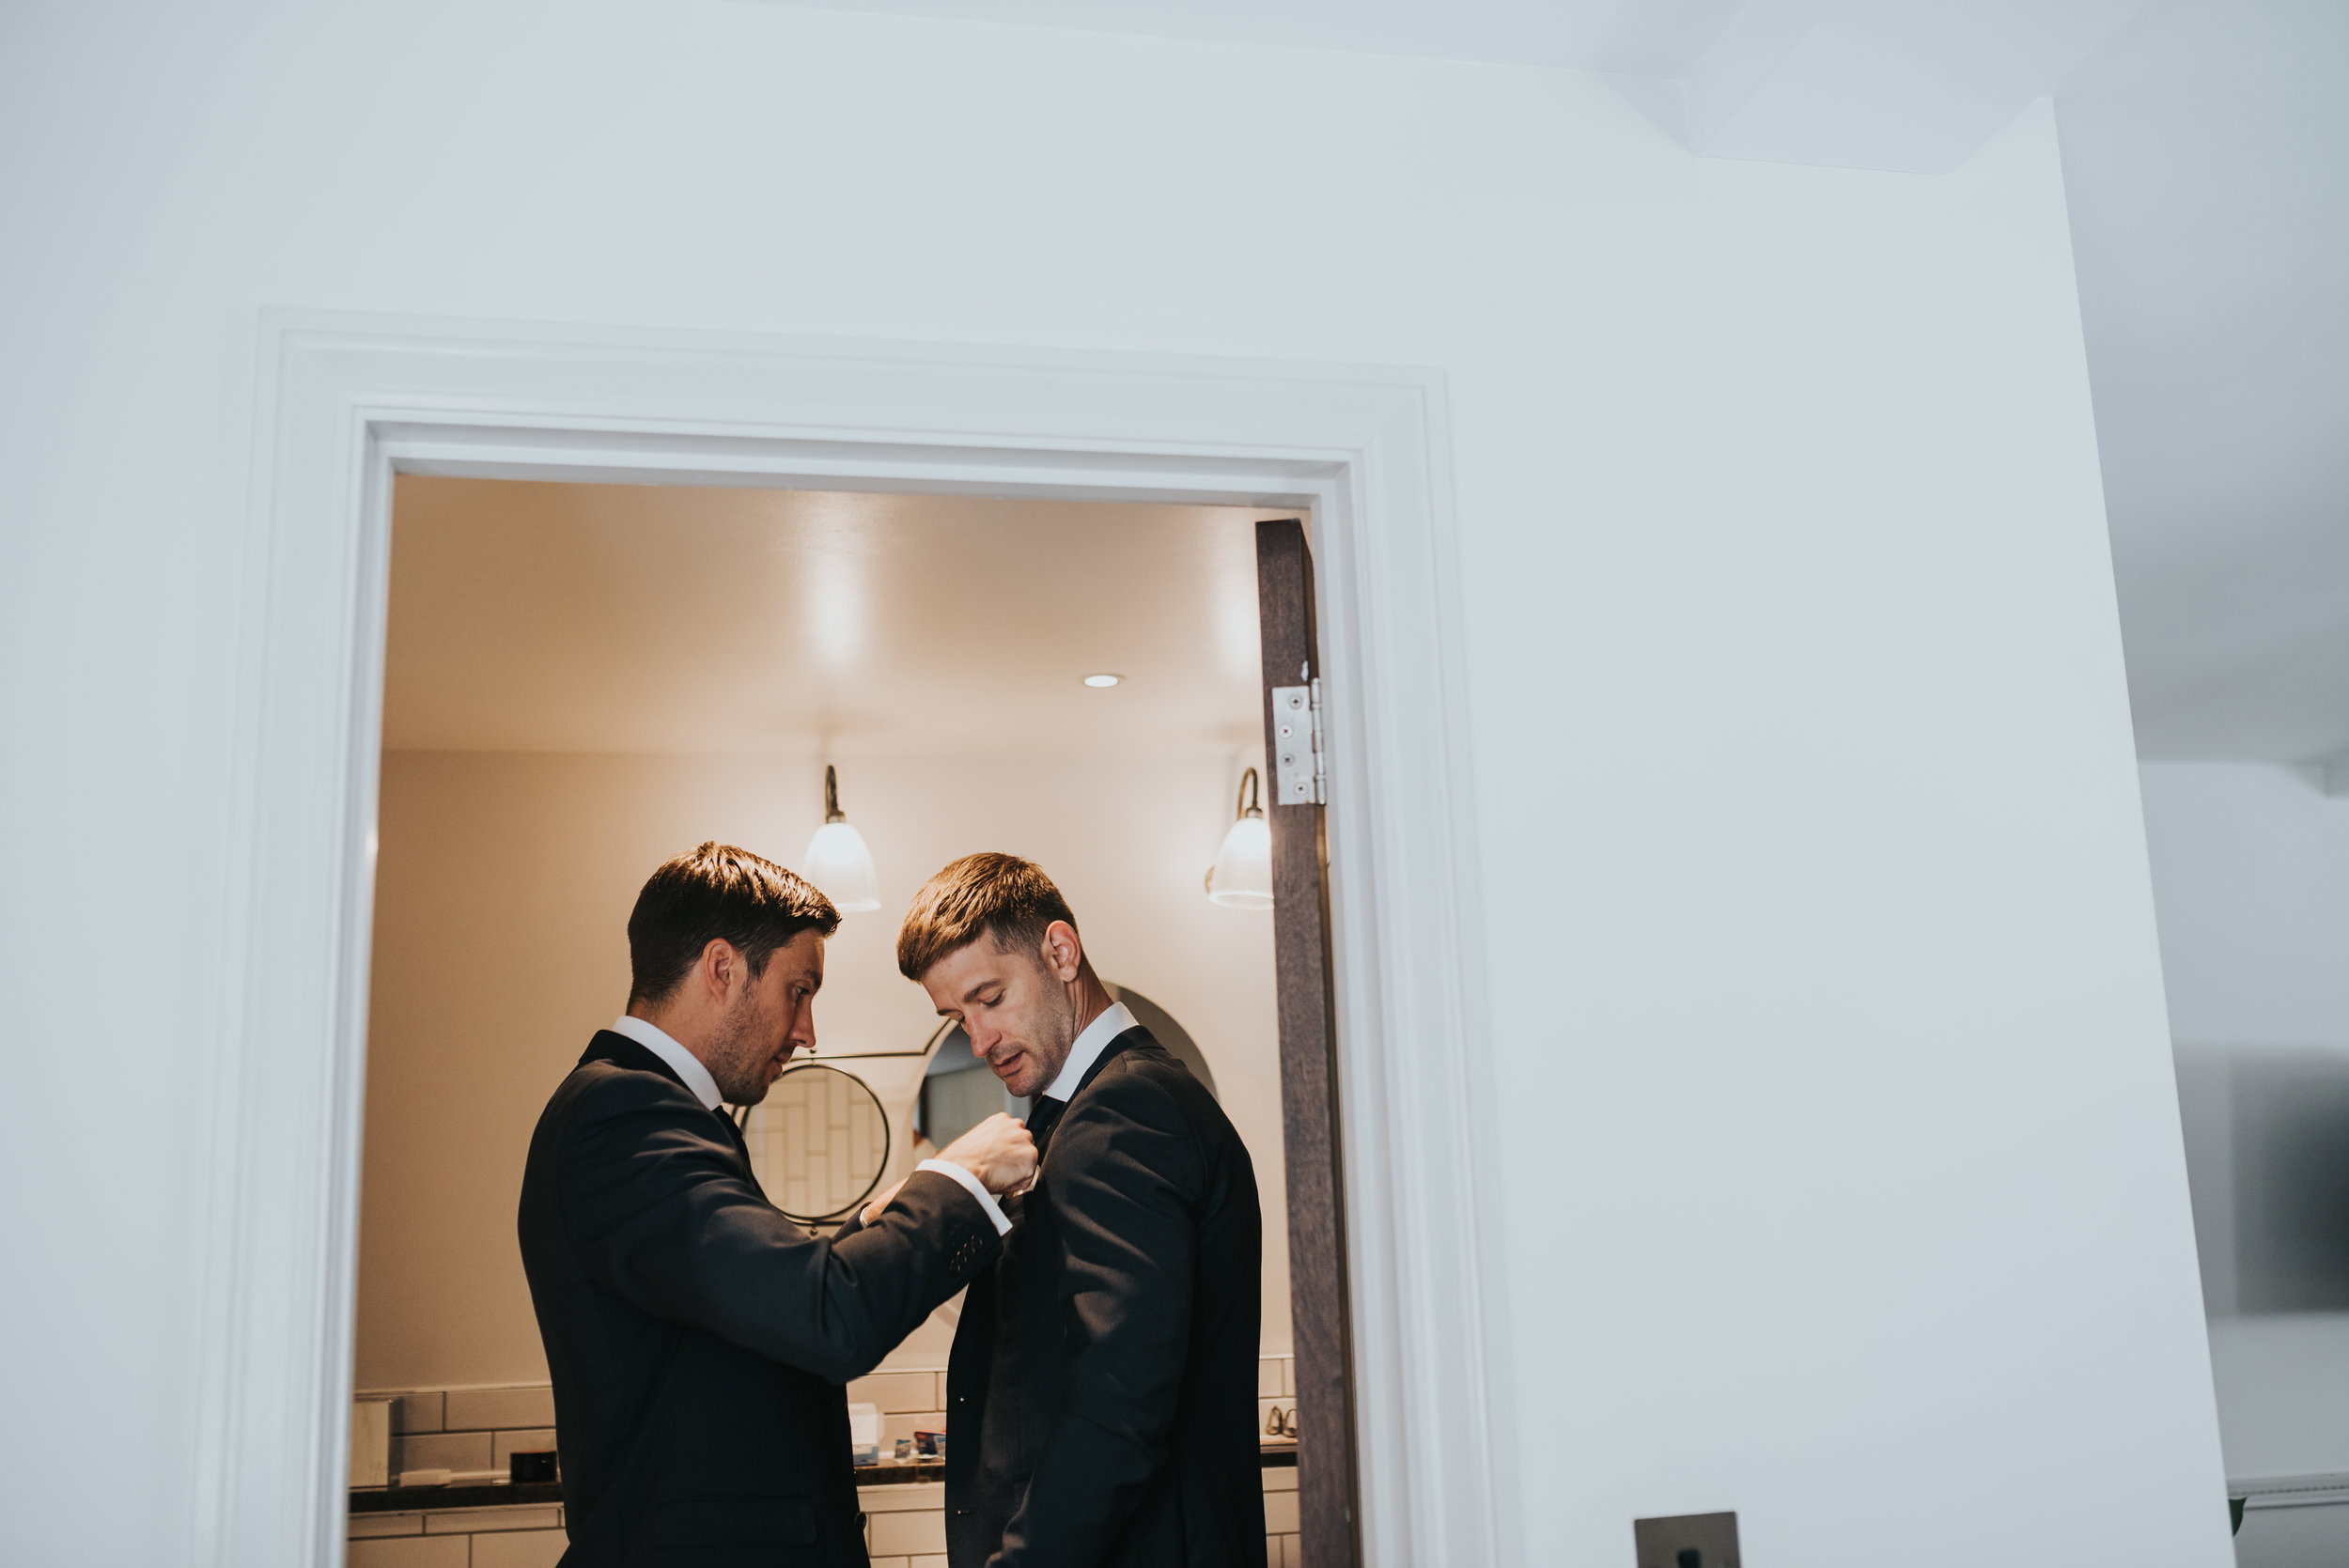 The groom has his groomsman fix his suit for him.